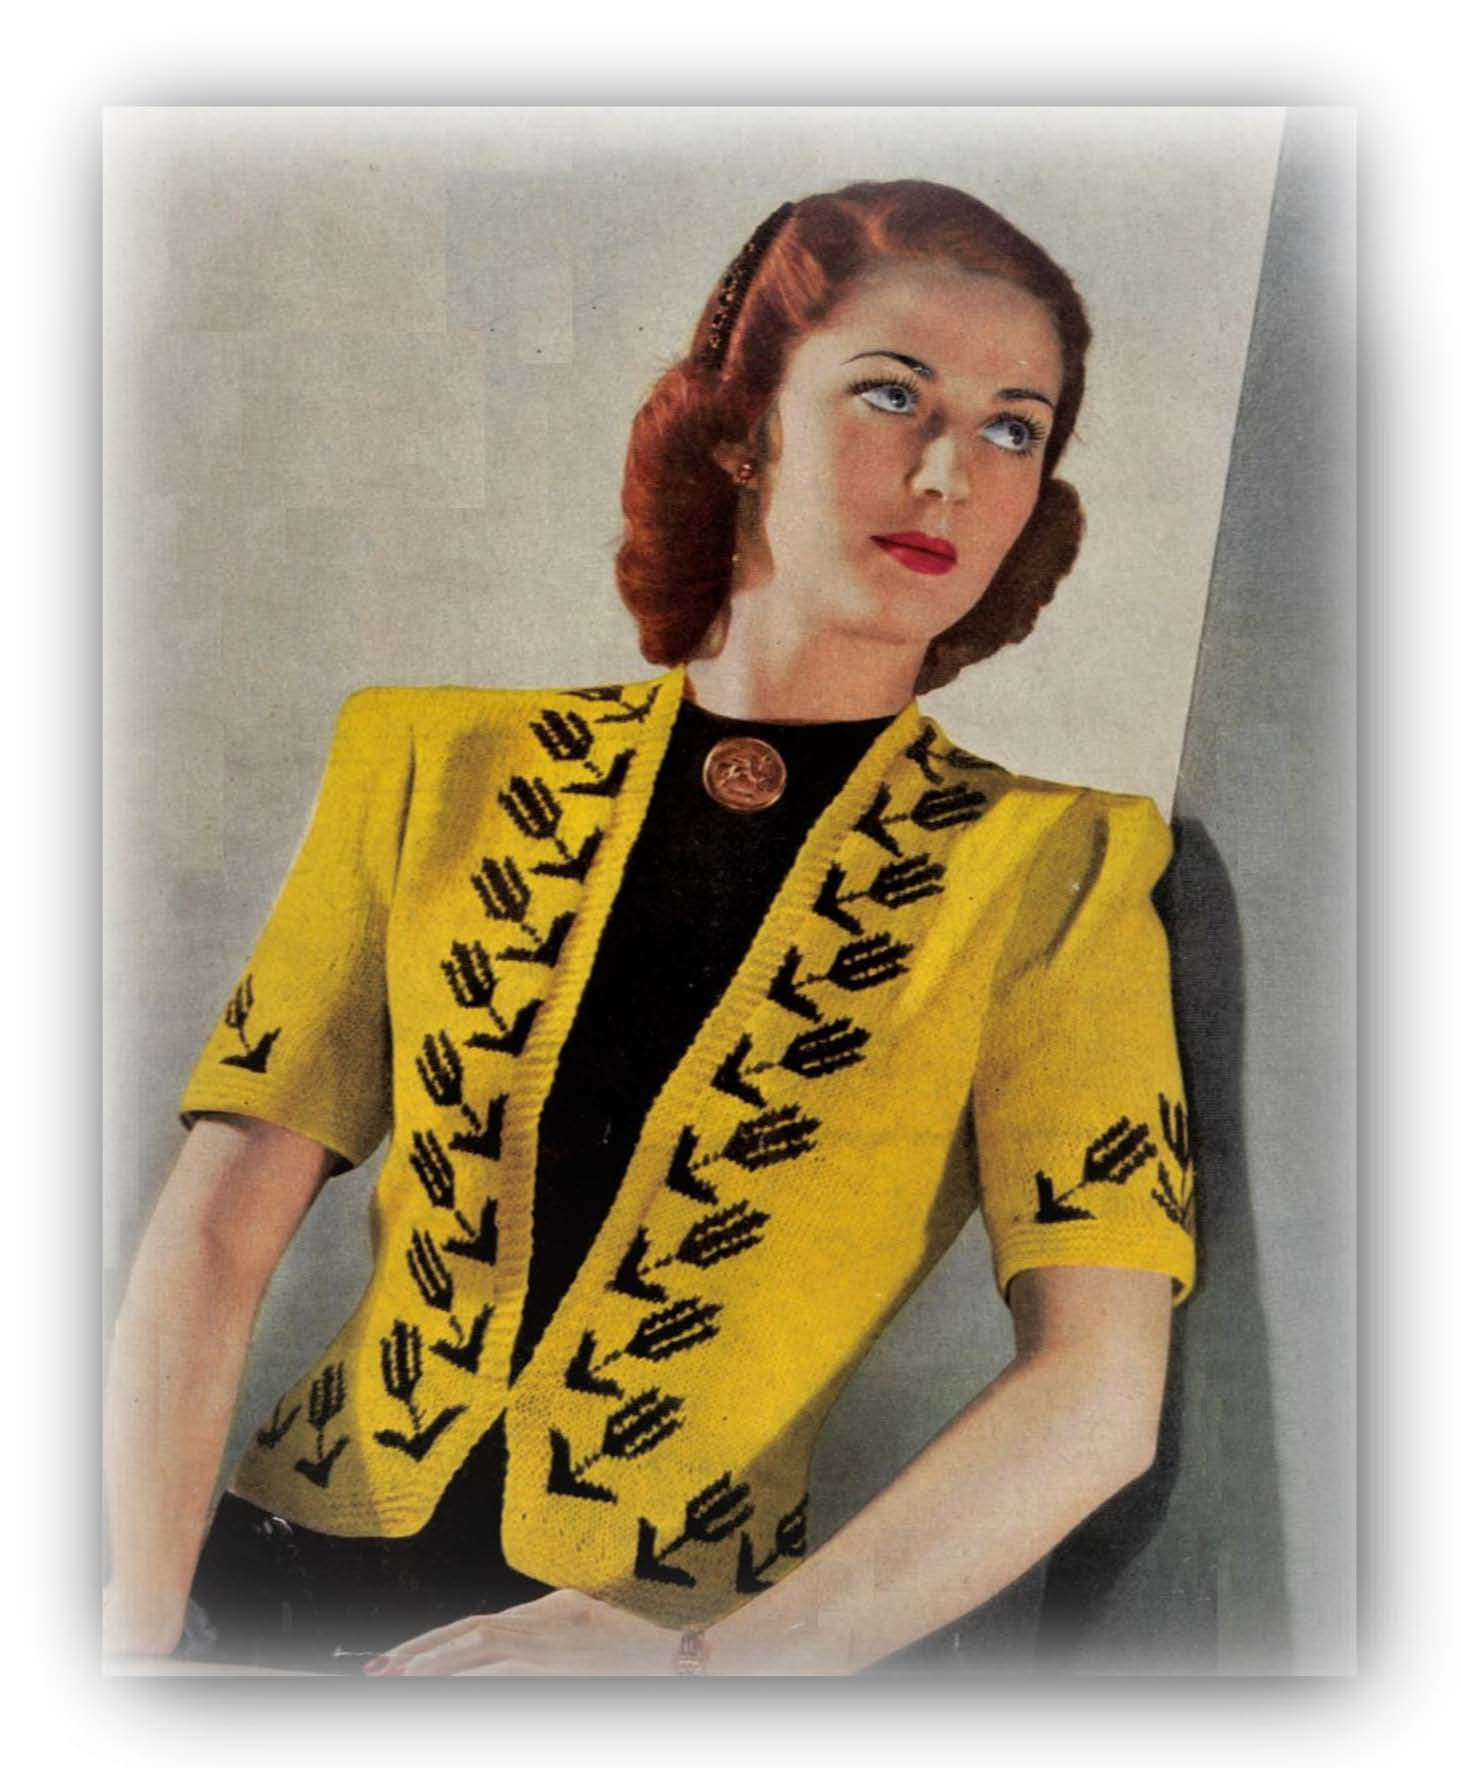 Join us in our love of patterns.  We have have patterns from the Victorian era through to the retro 70's. Knitting, crochet, macrame, wood work, plus vintage pattern books and magazines. All items are instant download digital patterns.